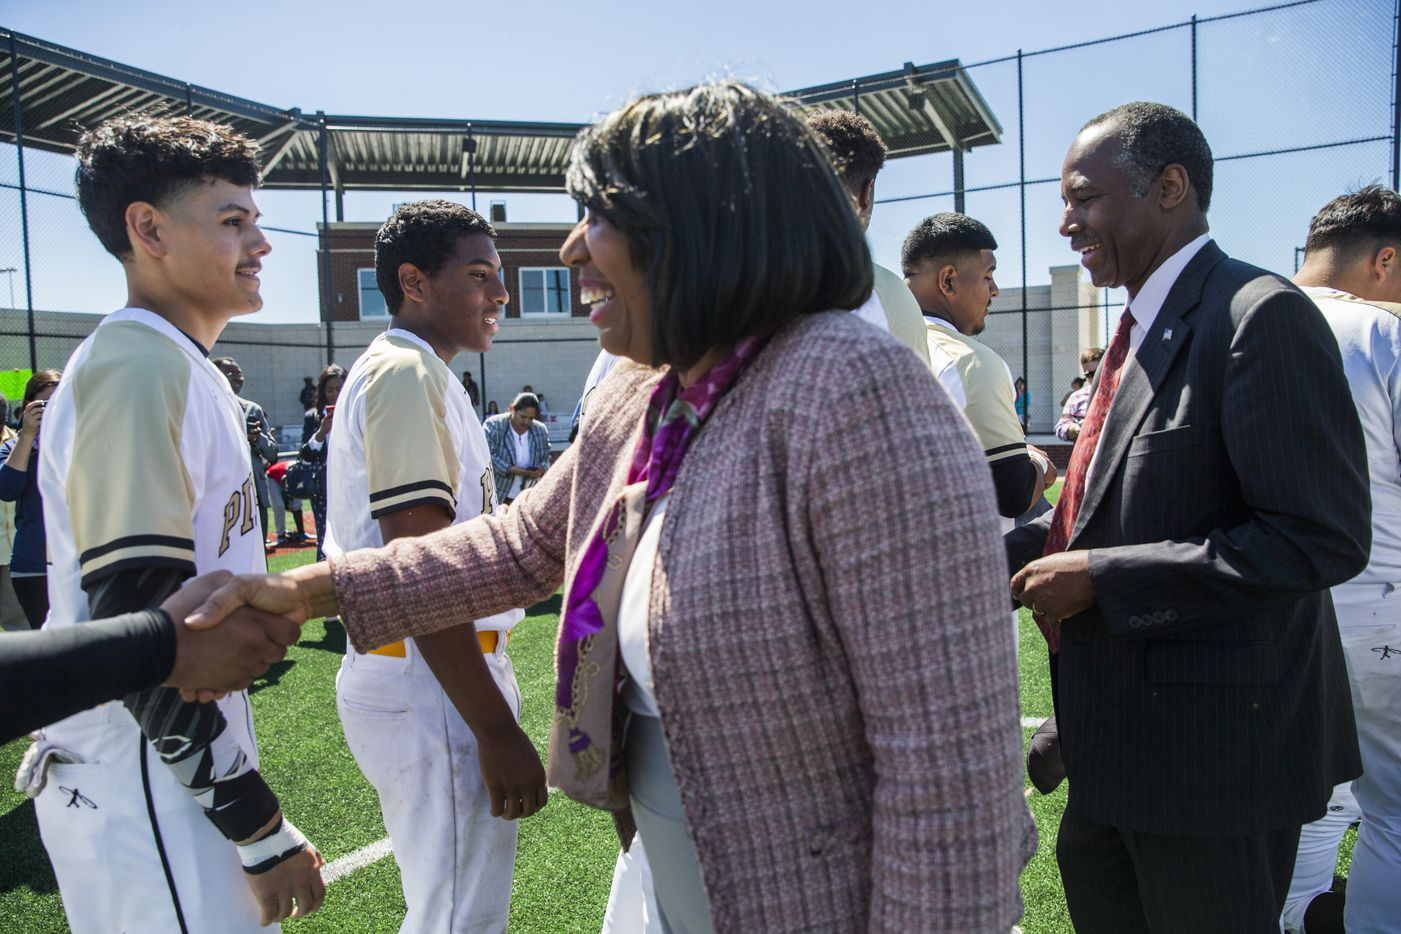 U.S. Secretary of Housing and Urban Development Ben Carson, center, and his wife, Candy Carson, meet youth baseball players while they take a tour of the Dallas Housing Authority's Major League Baseball Youth Academy. (Ashley Landis/The Dallas Morning News)